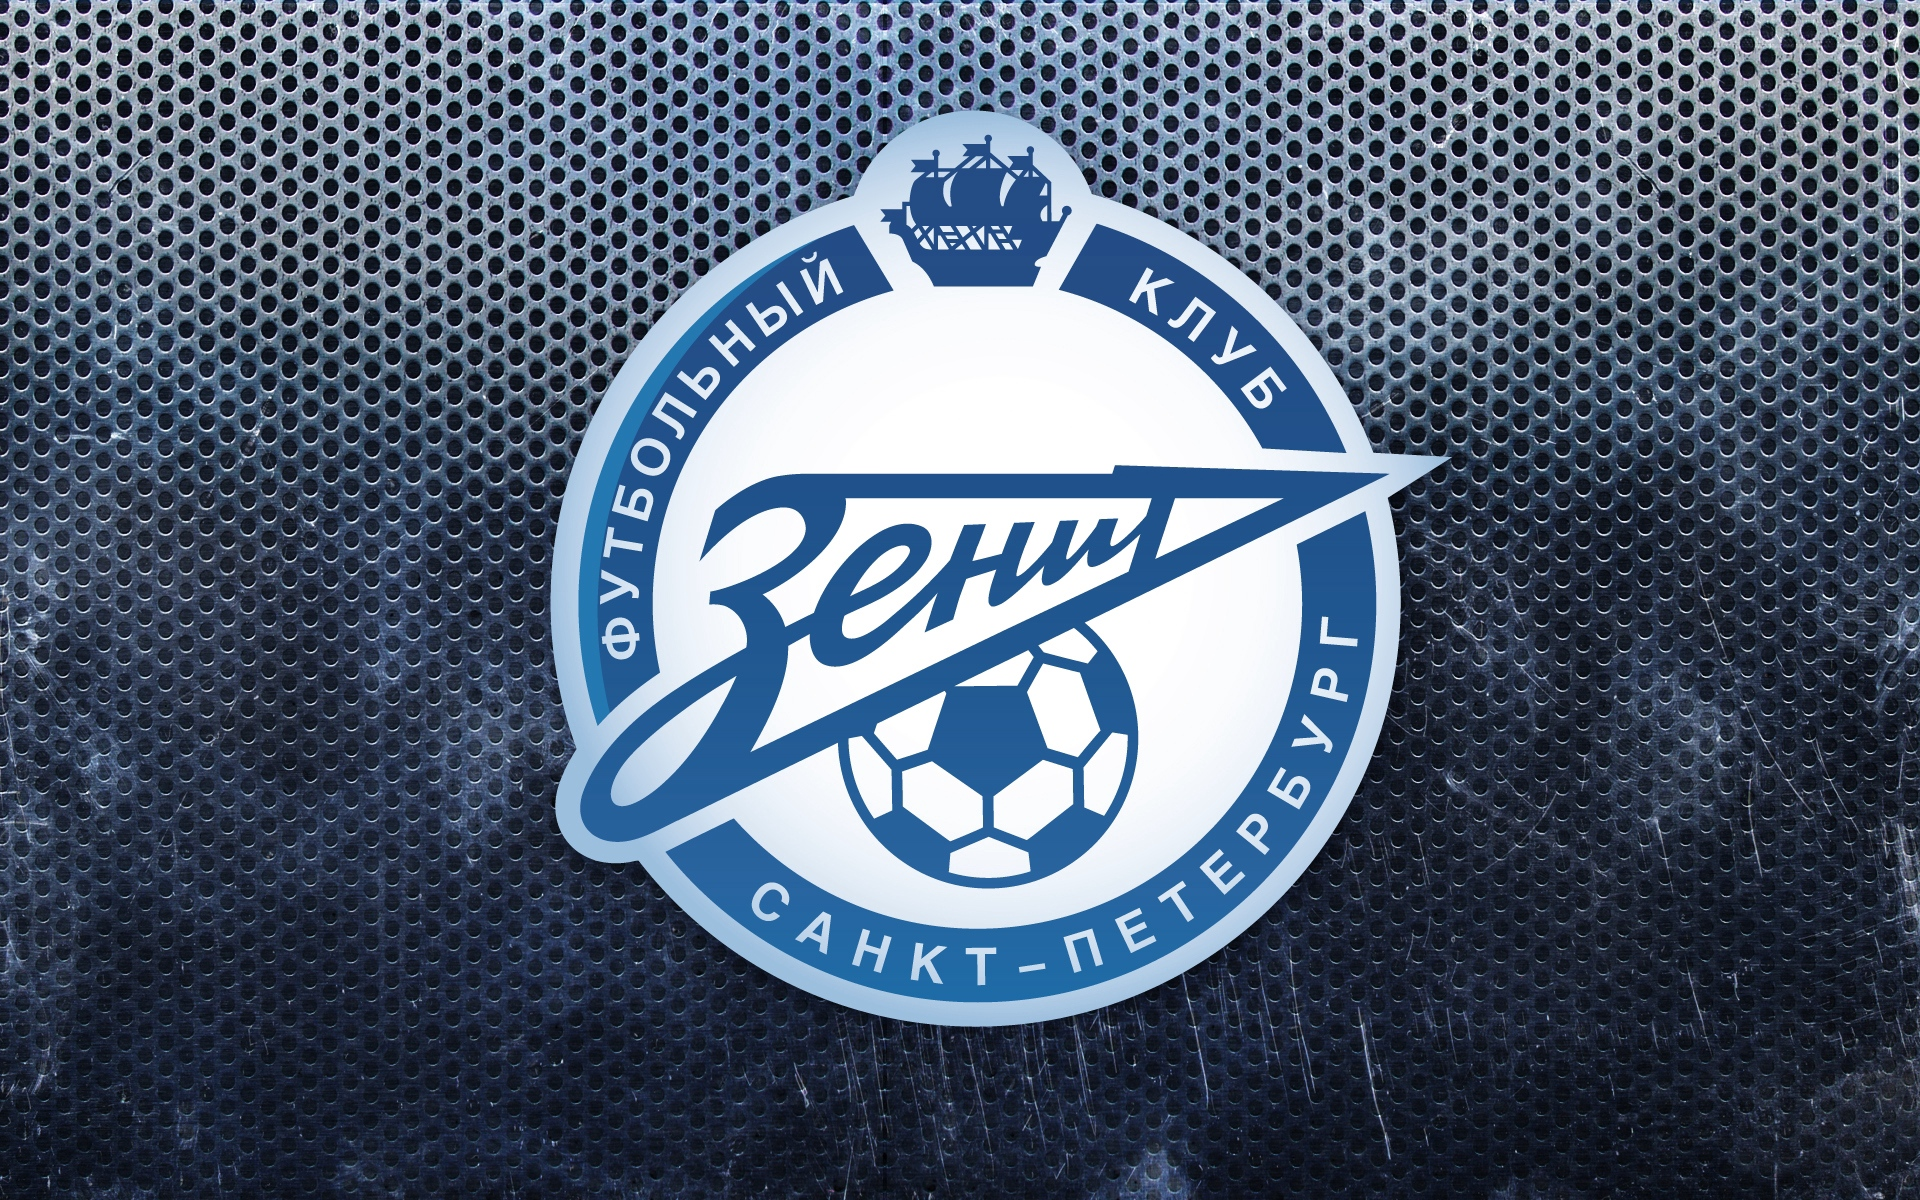 Download wallpaper 1920x1200 zenith football logo football team 1920x1200